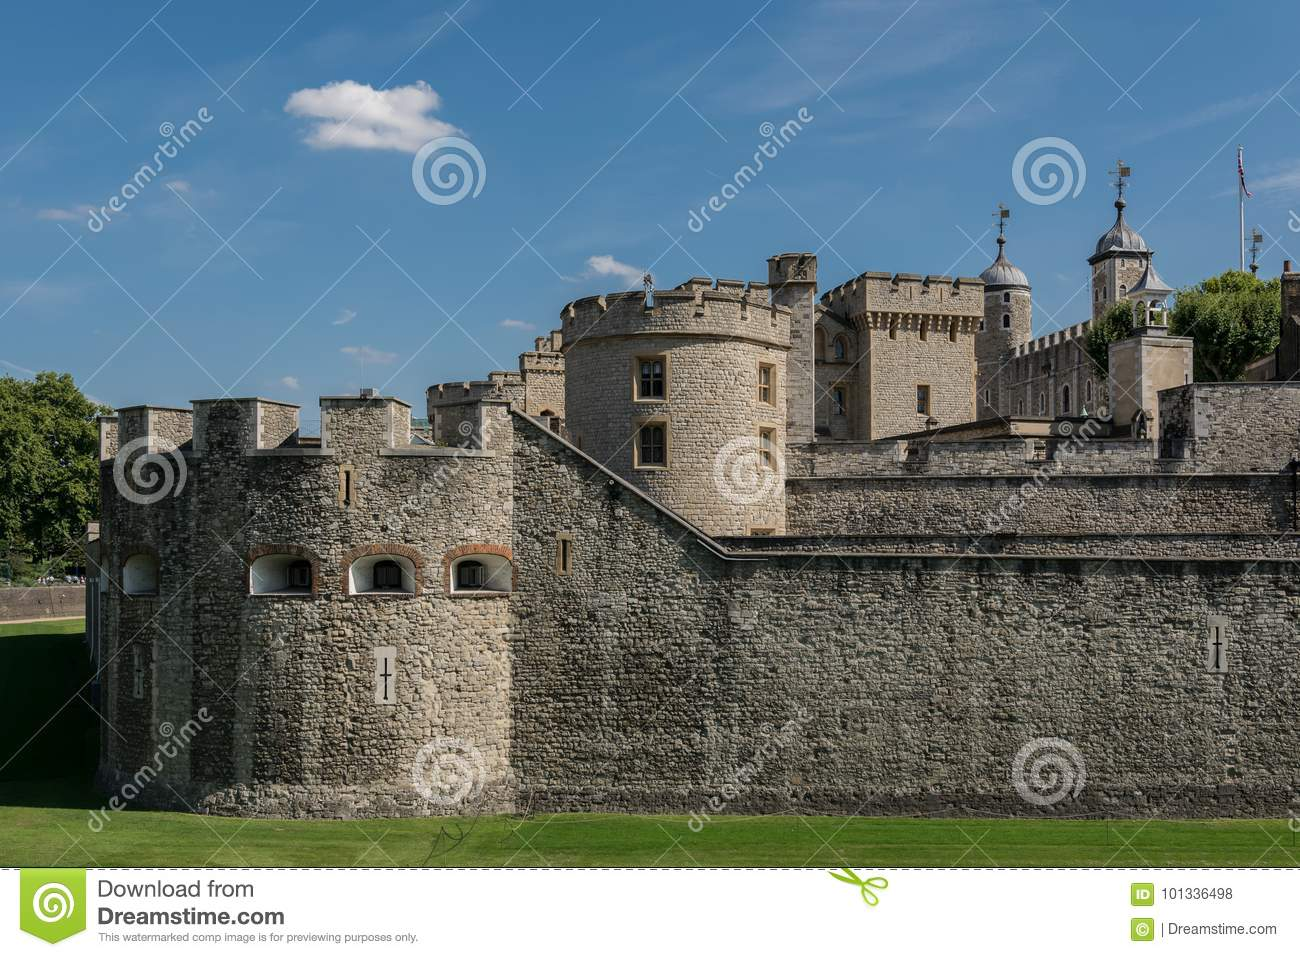 Tower of London stock photo  Image of historic, citadel - 101336498